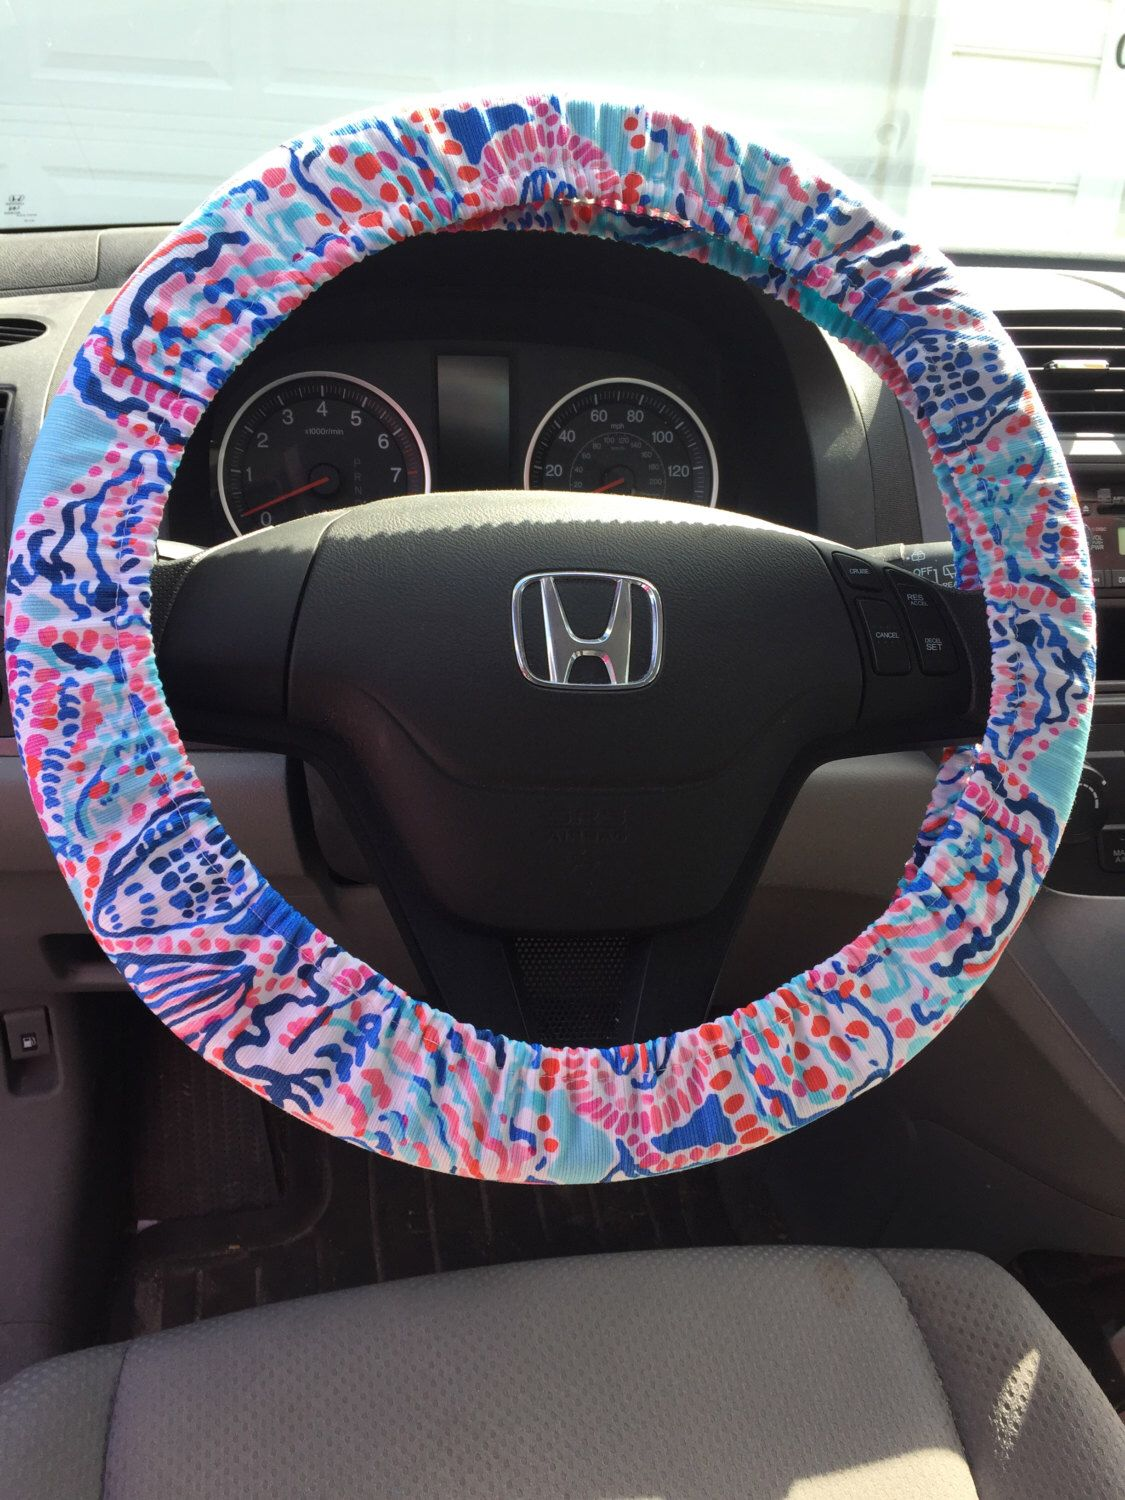 Wondrous Steering Wheel Cover Made With Lilly Pulitzer Multi Shell Me Alphanode Cool Chair Designs And Ideas Alphanodeonline